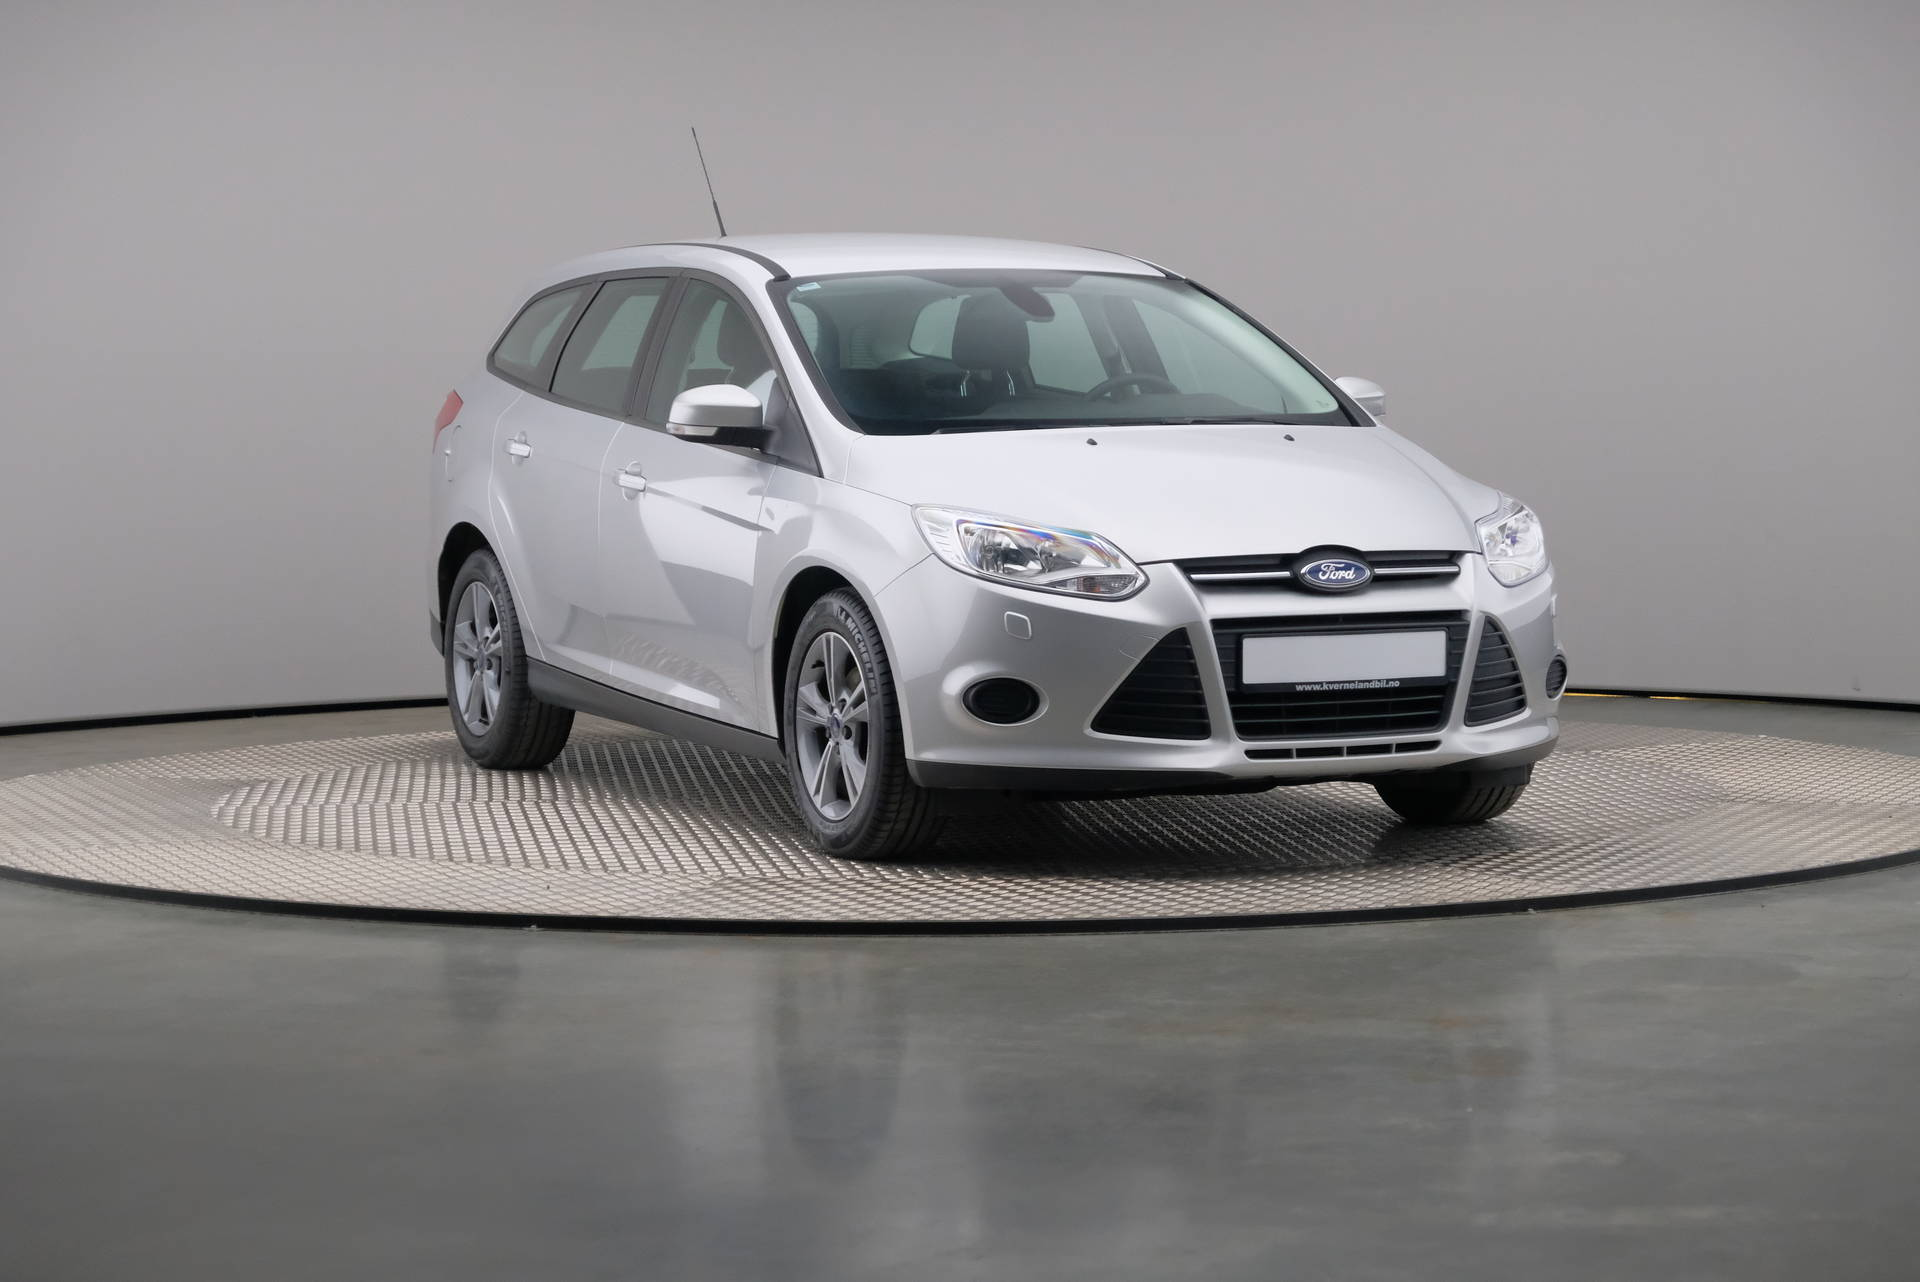 Ford Focus 1.1 100HK Trend PDC/BT, 360-image29